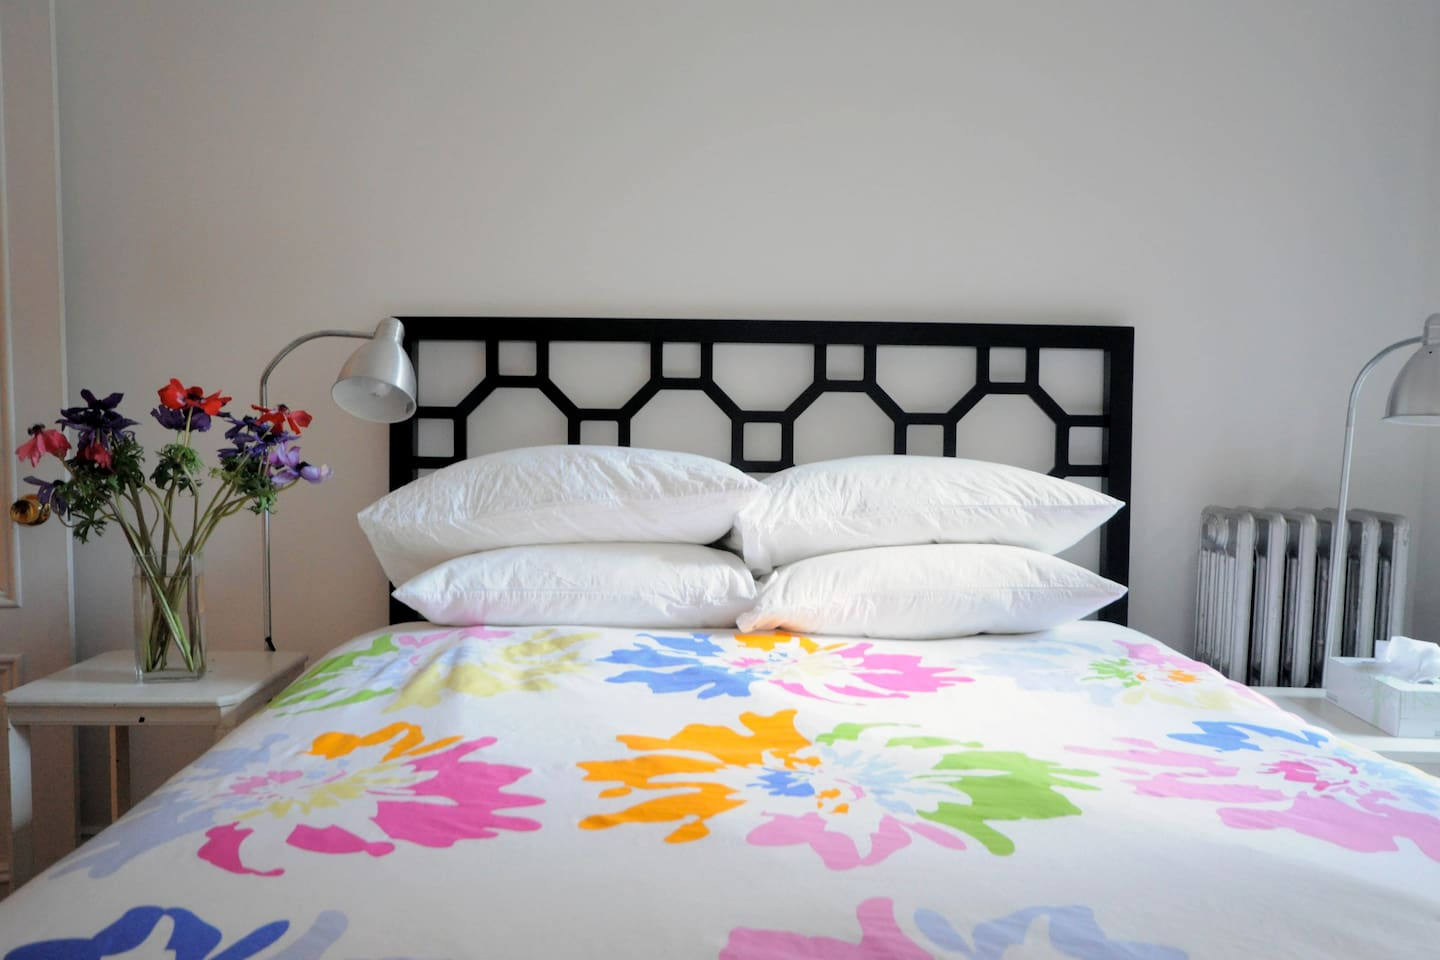 queen-sized bed purchased in 2011 - super comfortable with fresh cotton sheets